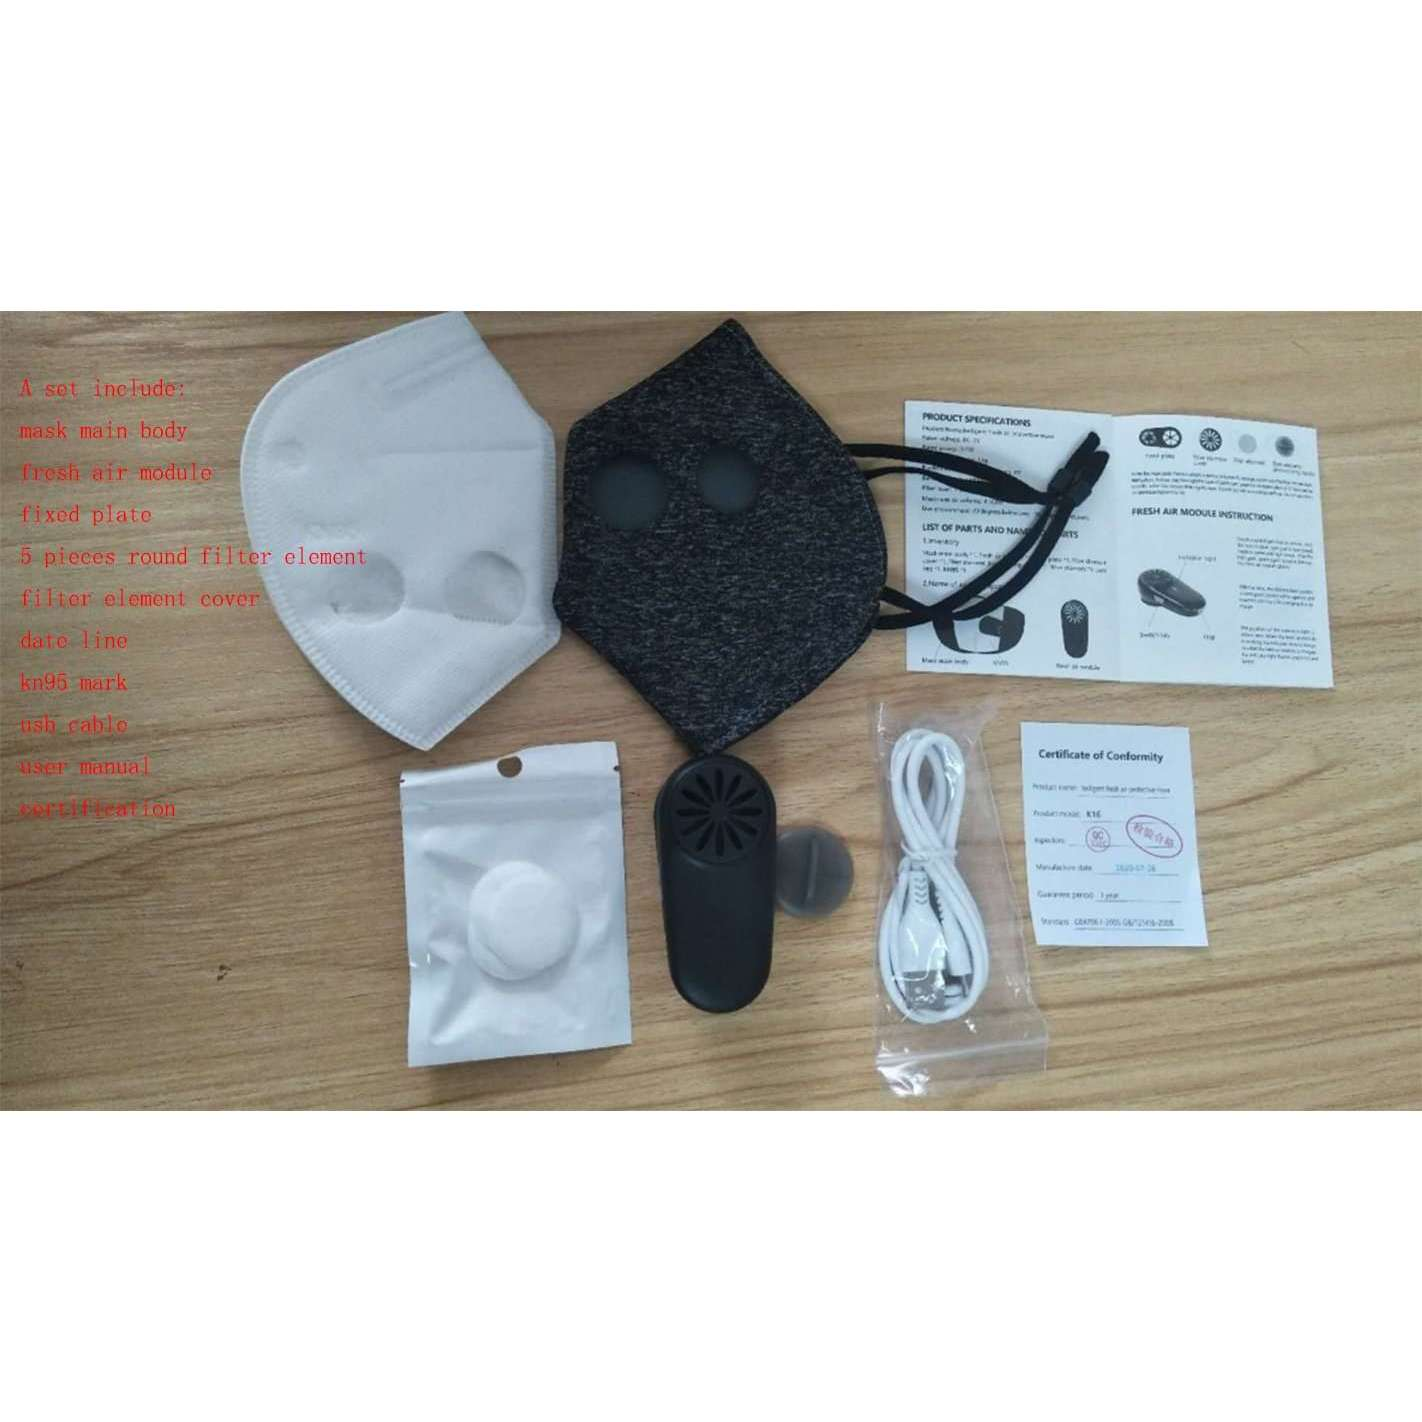 Fan-Powered Face Mask - 3-speed Motorized Fan - Reusable Unisex Fresh Air Purifier Masks - Lyfy-FAN-MASK-GREY - lyfy.co